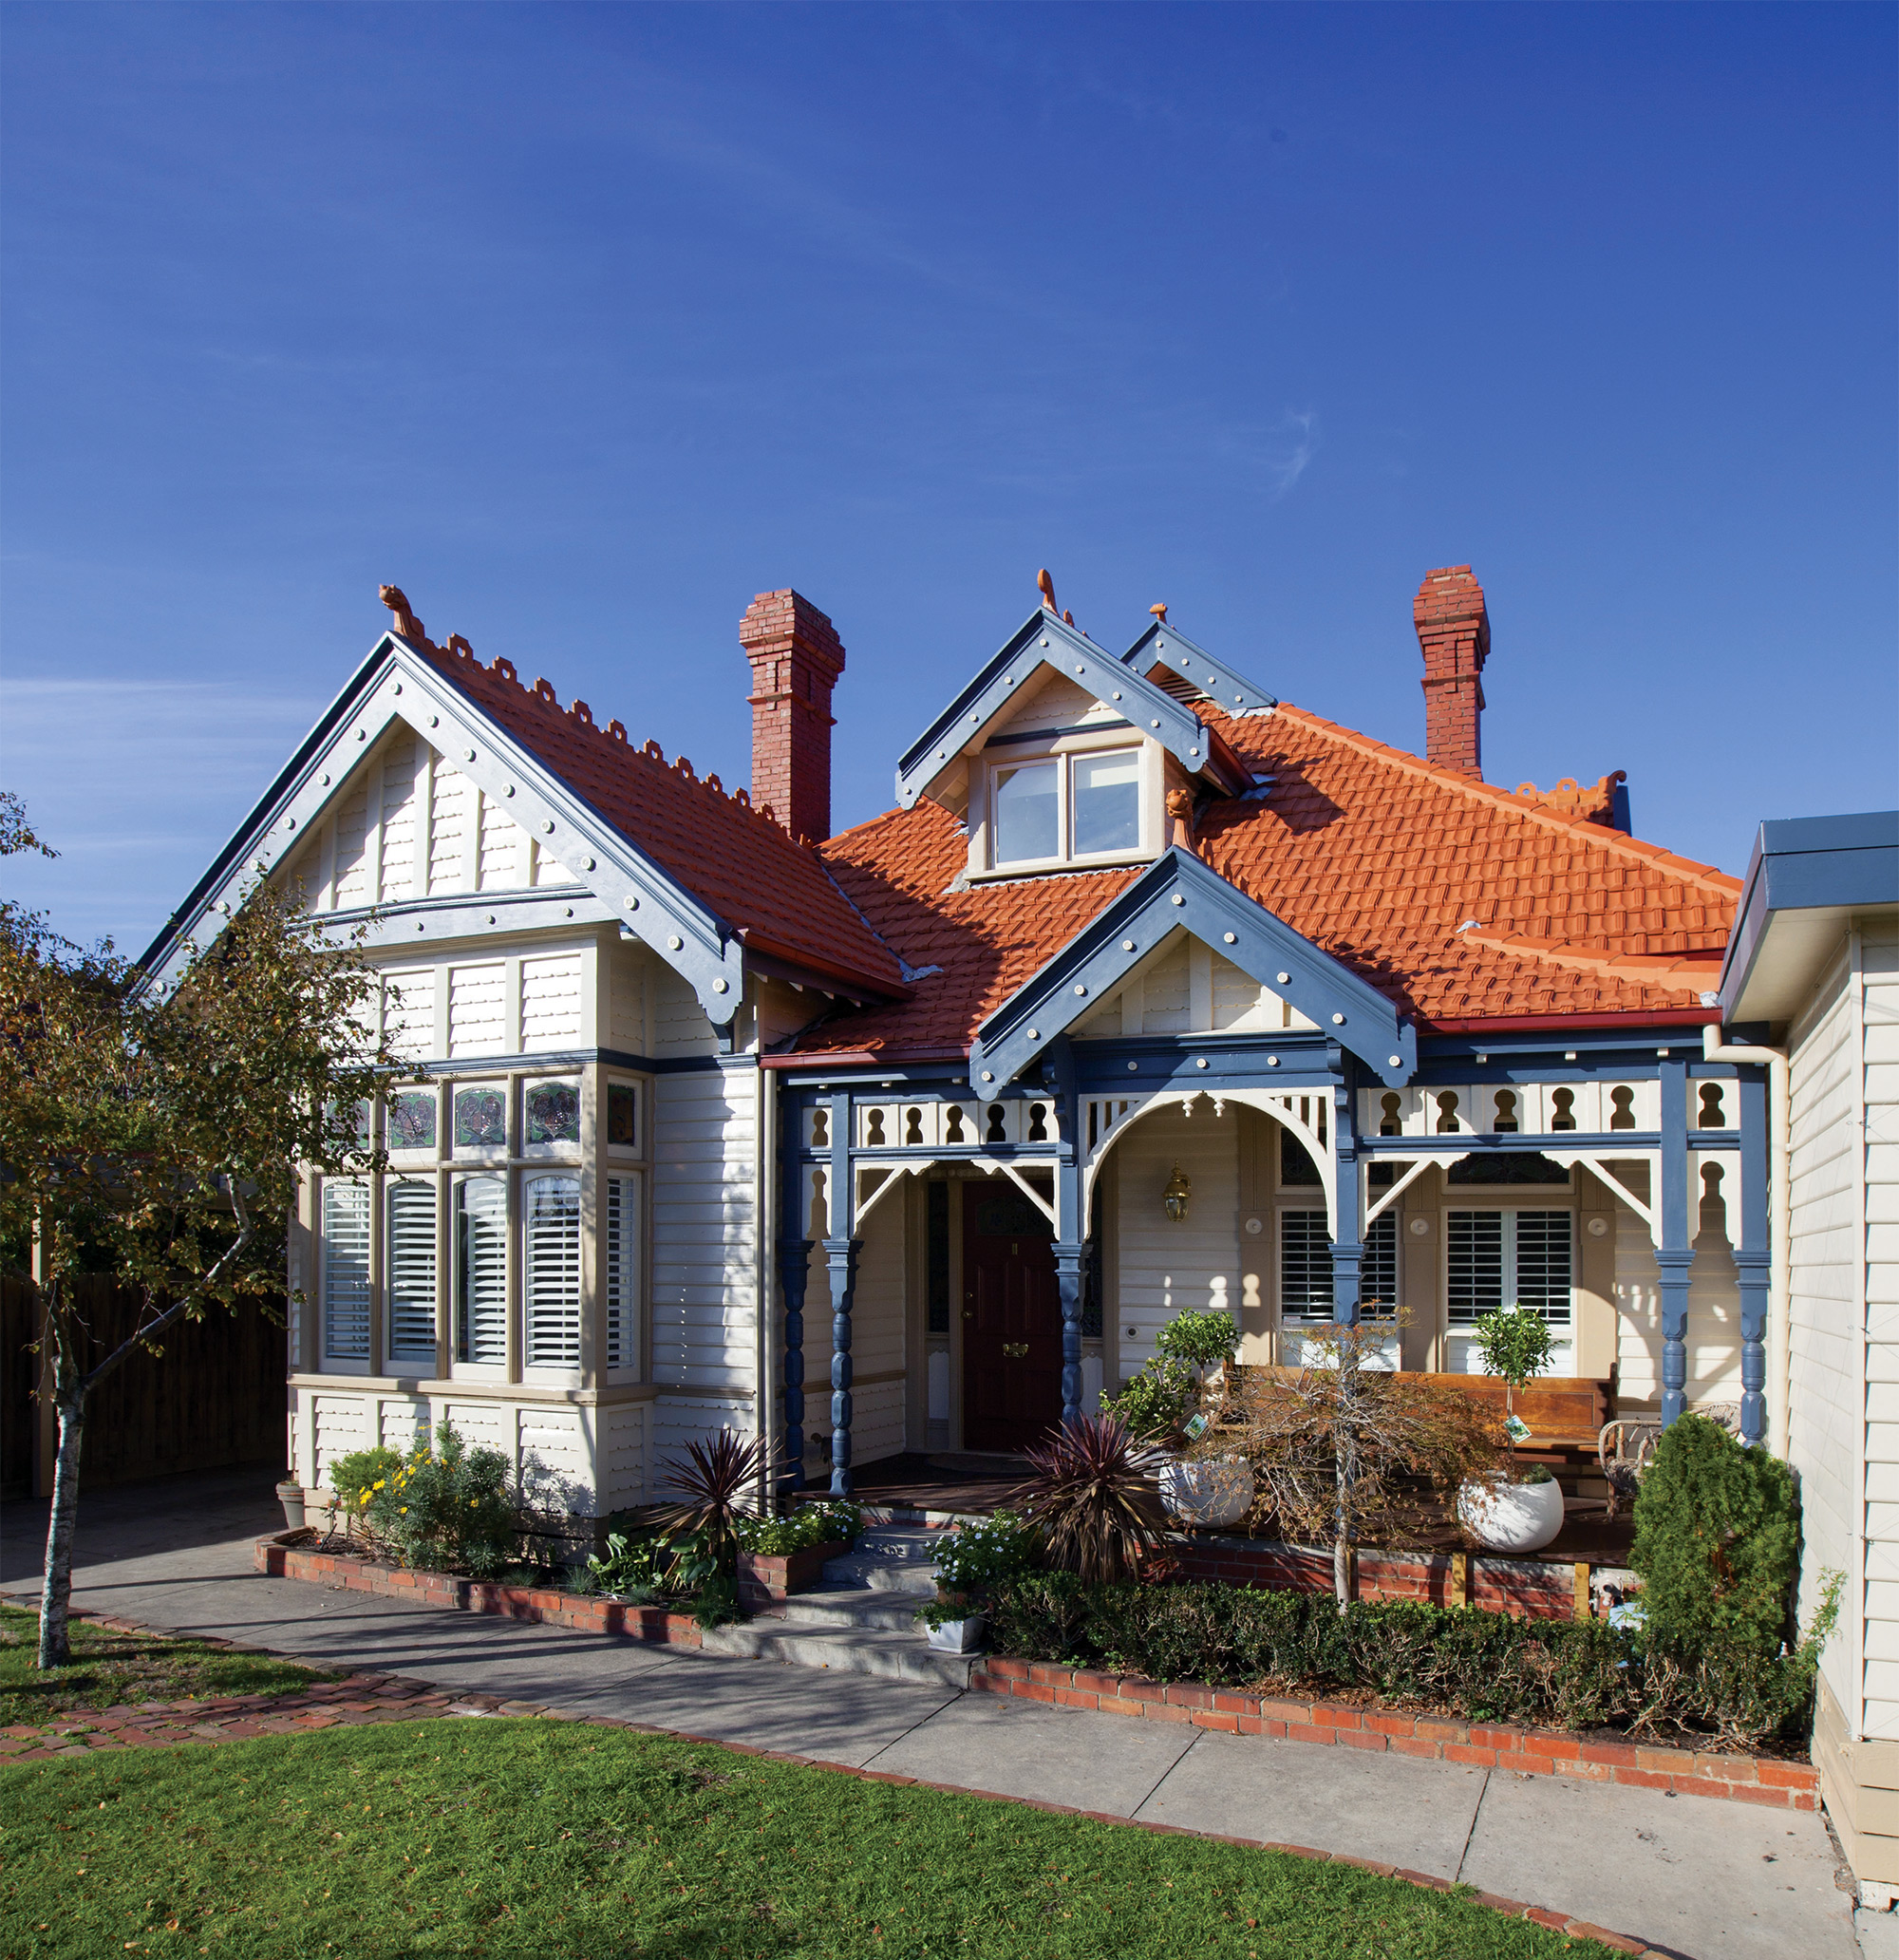 Christchurch Roofers. Canterbury Commercial Roofers, Odonnell Brick and TileRoofing Contractors Christchurch, Odonnell Brick and Tile